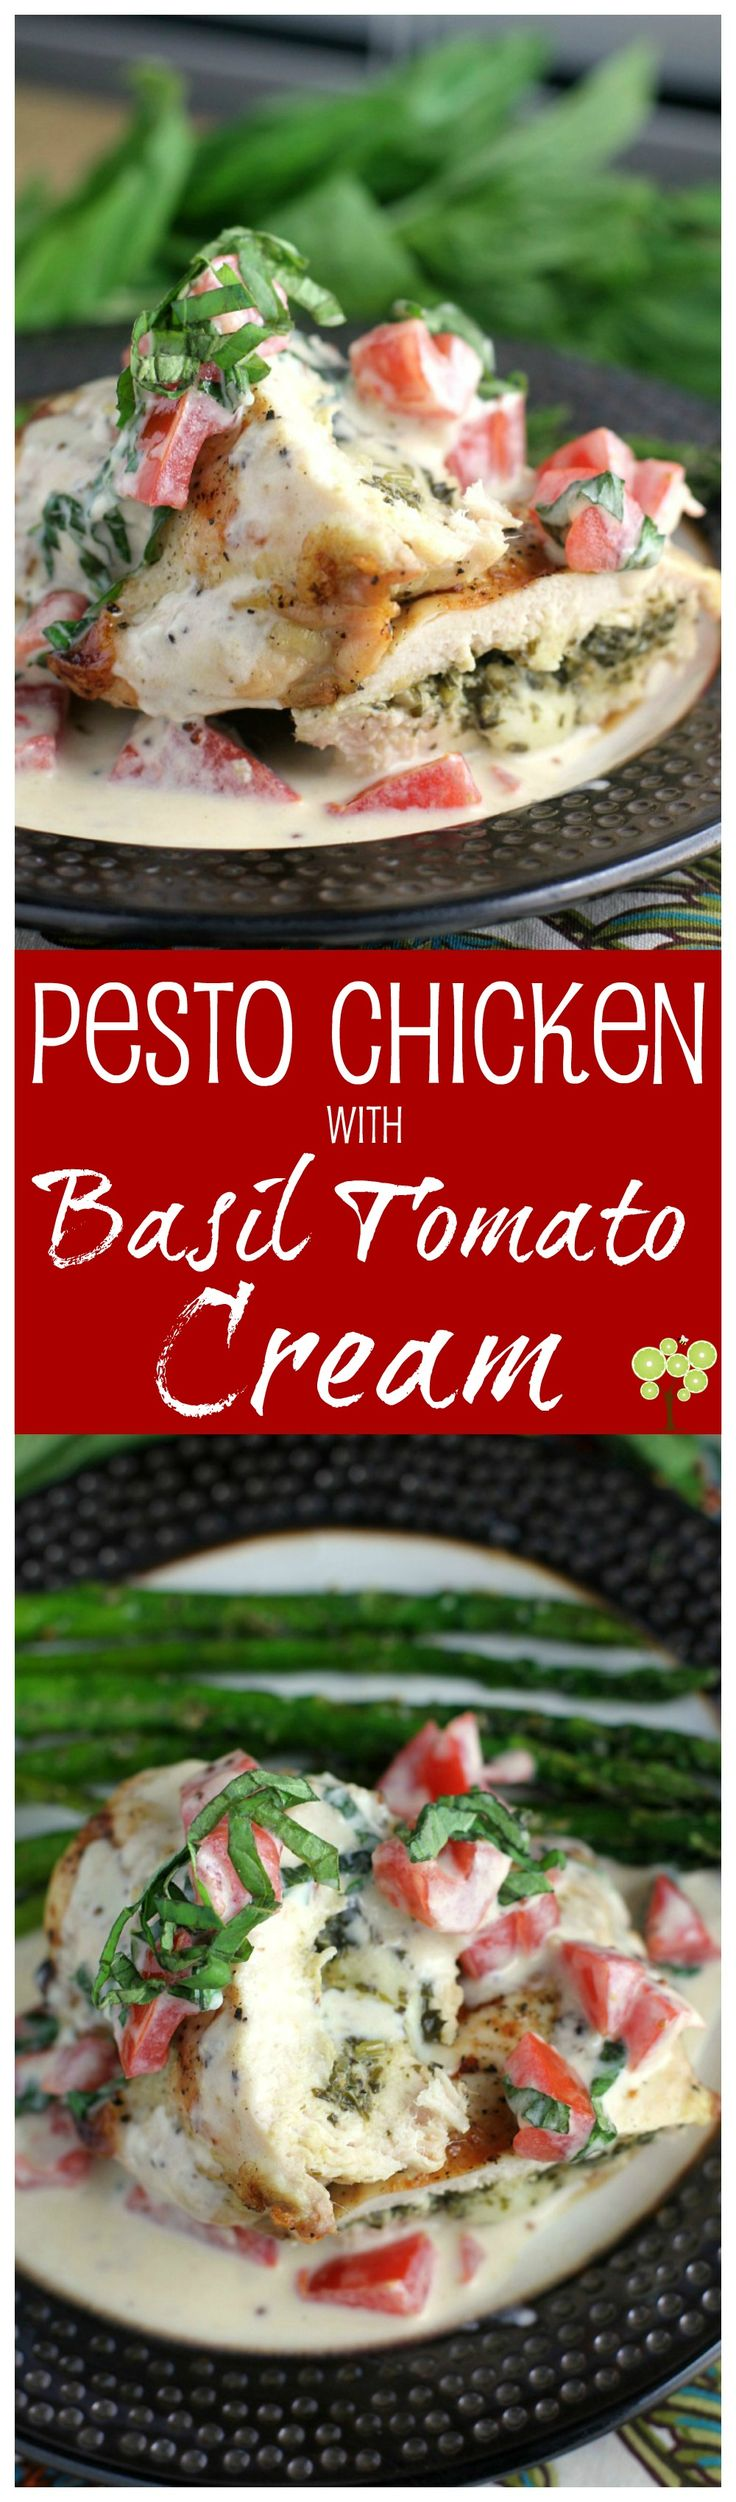 Pesto Chicken with Basil Tomato Cream from EricasRecipes.com